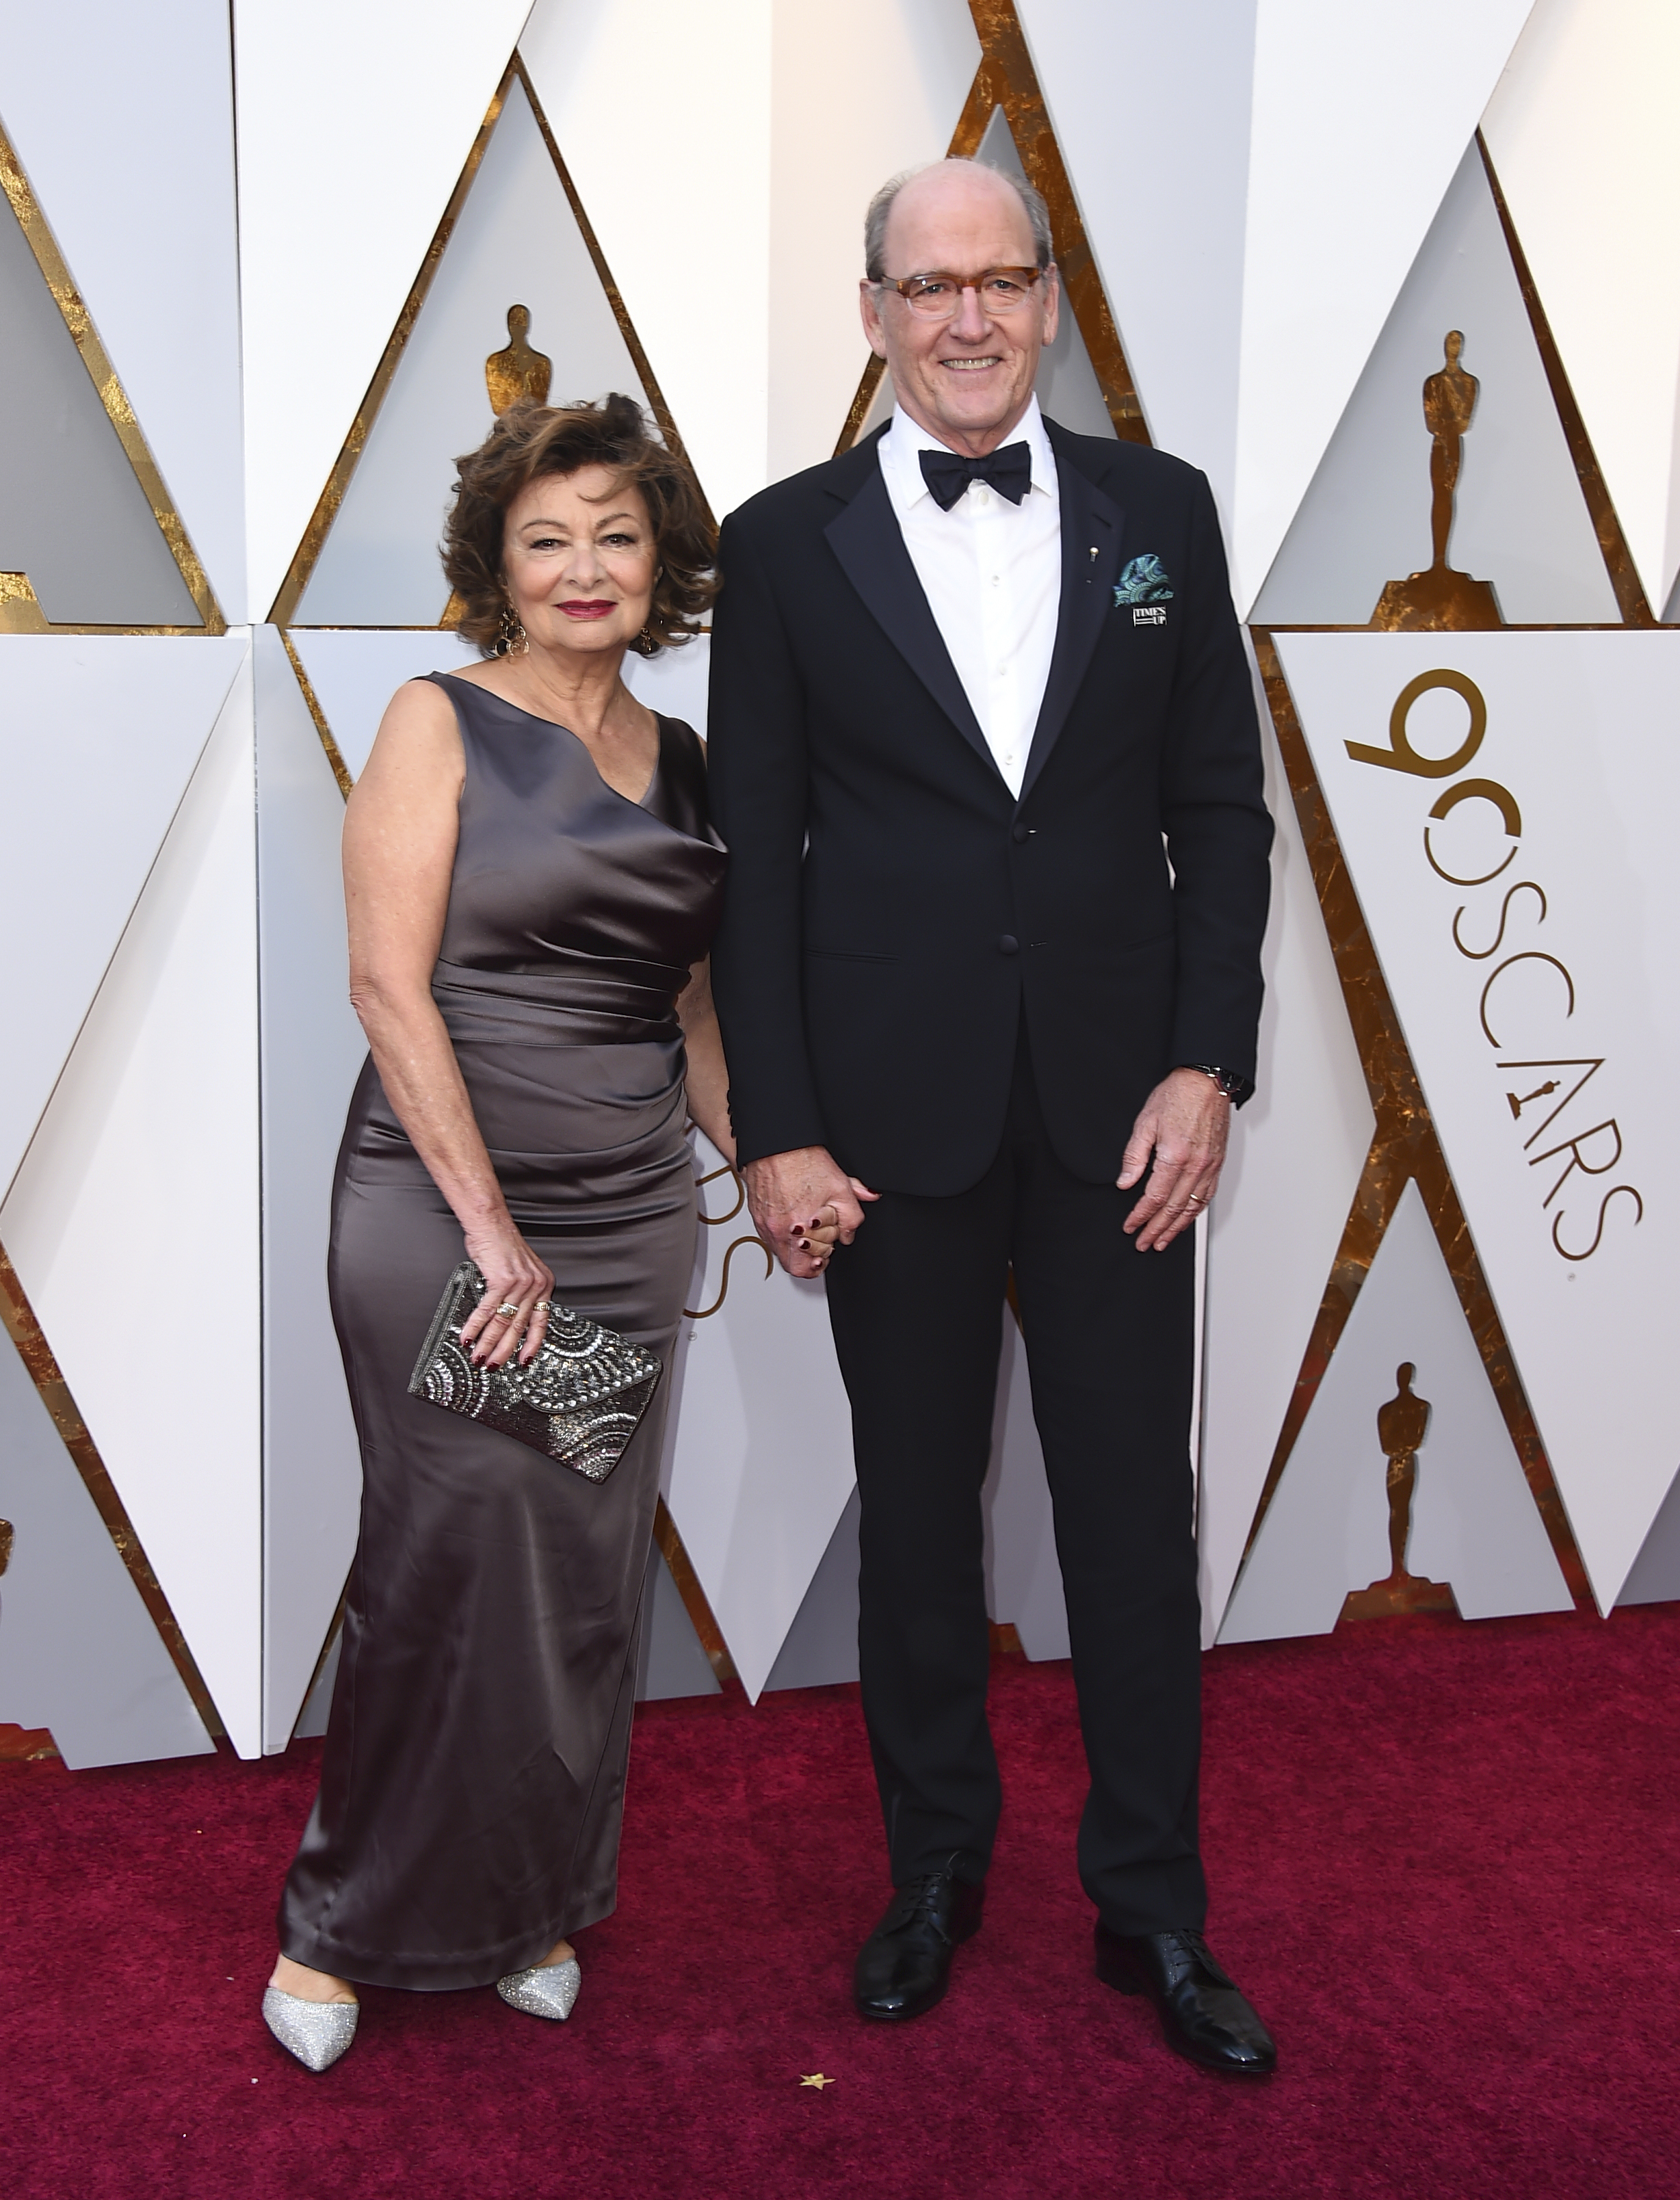 <div class='meta'><div class='origin-logo' data-origin='none'></div><span class='caption-text' data-credit='Jordan Strauss/Invision/AP'>Sharon R. Friedrick, left, and Richard Jenkins arrive at the Oscars on Sunday, March 4, 2018, at the Dolby Theatre in Los Angeles.</span></div>